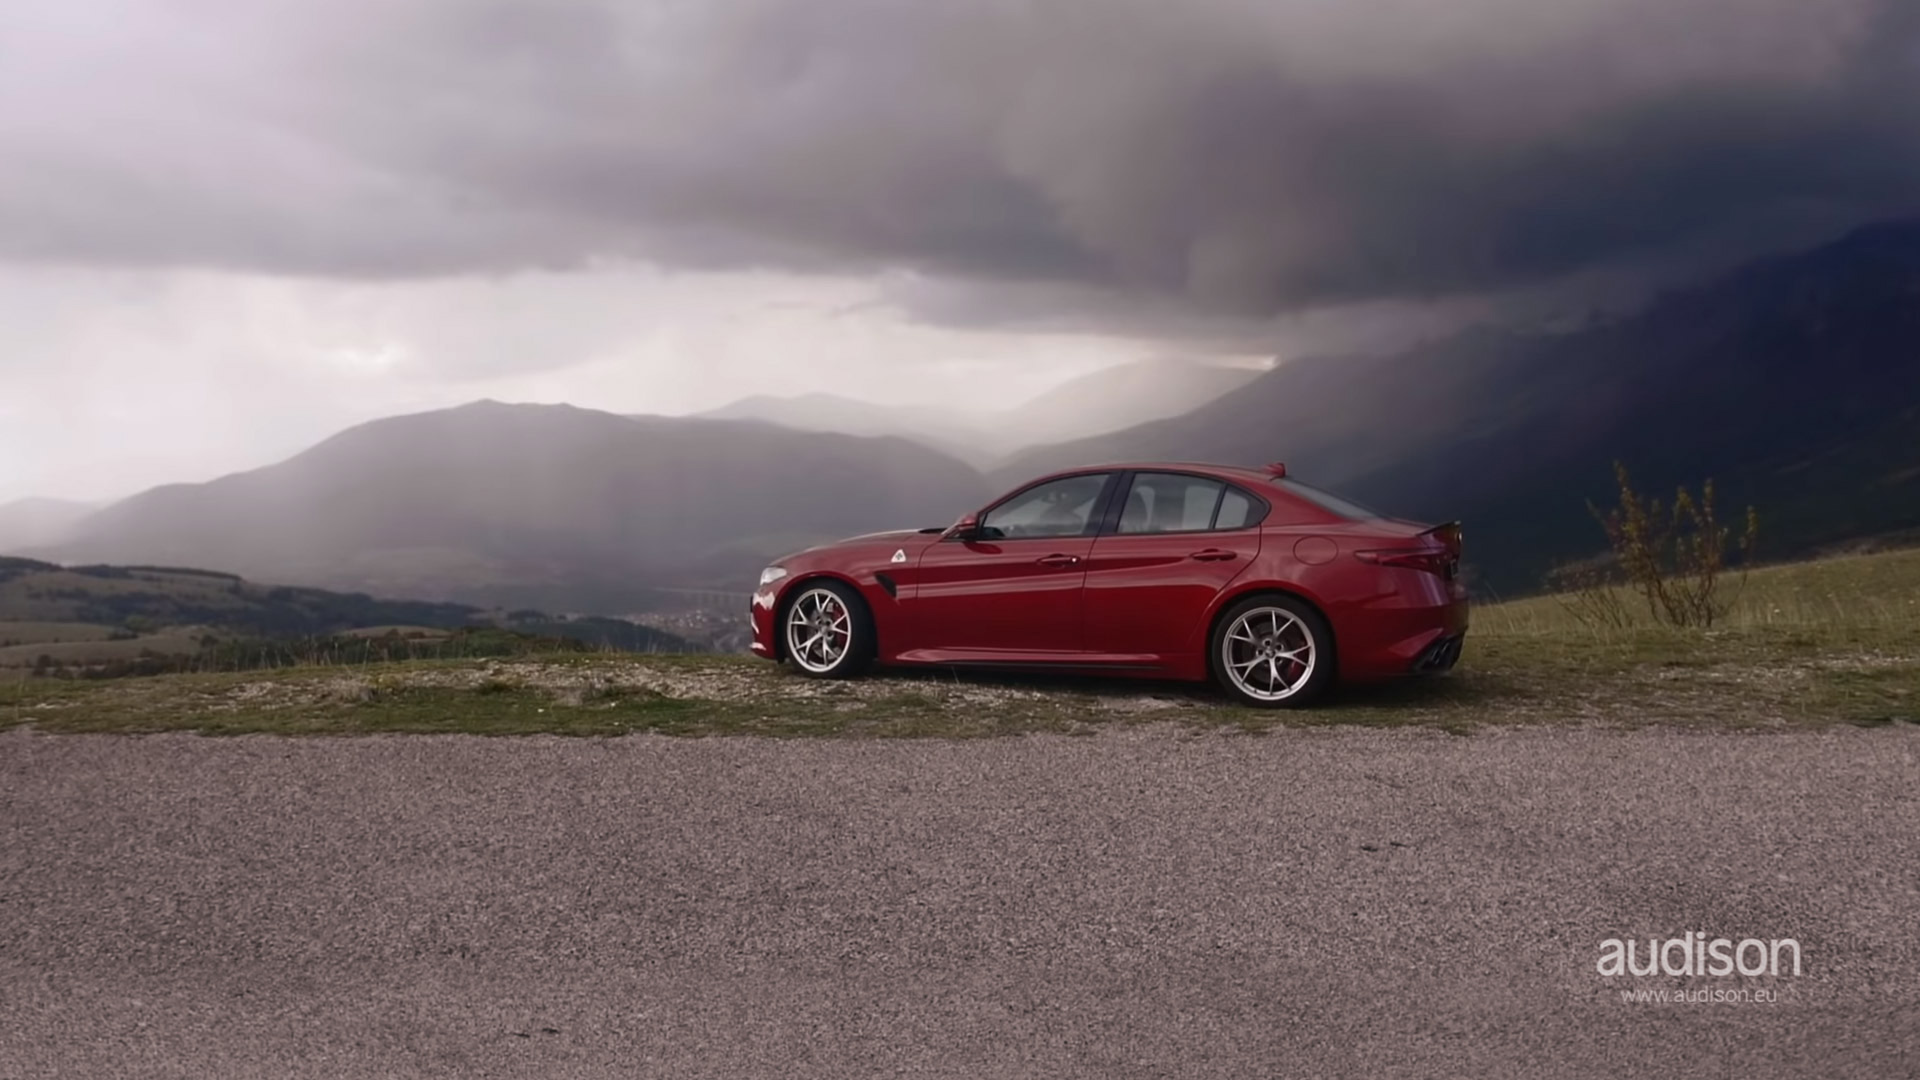 hight resolution of giulia qv meets audison thesis